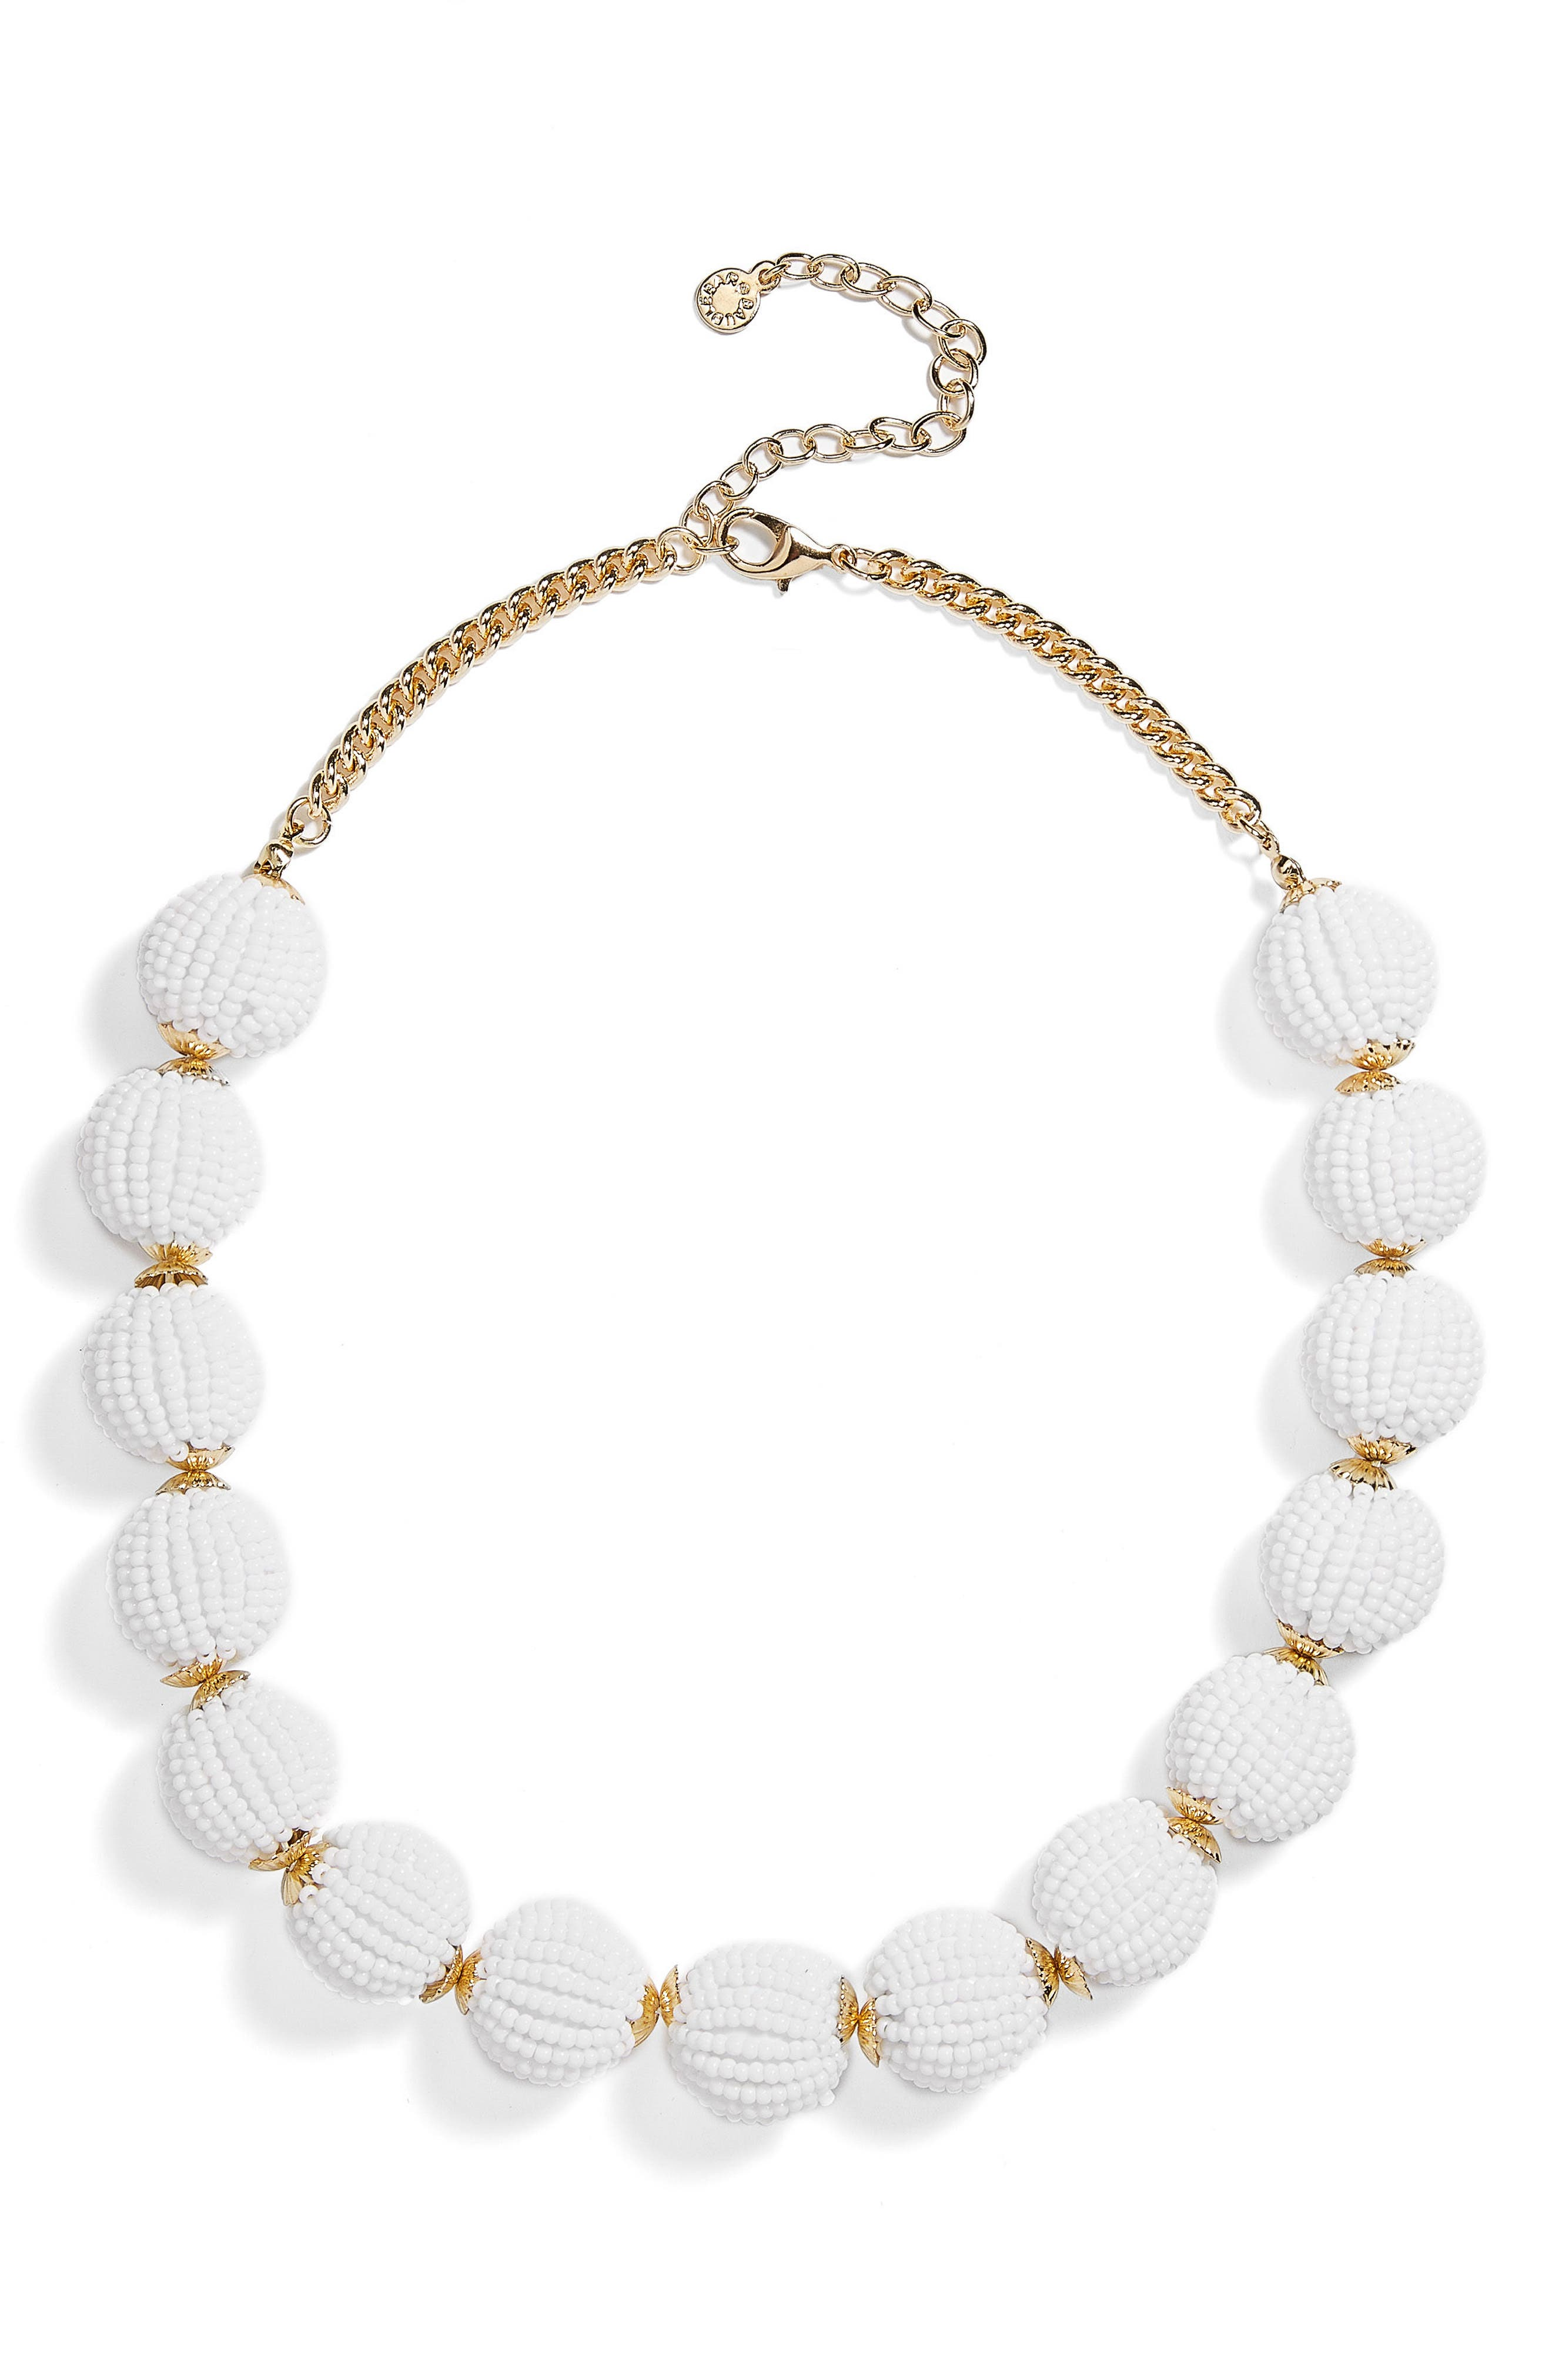 Beaded Ball Statement Necklace,                             Main thumbnail 1, color,                             White